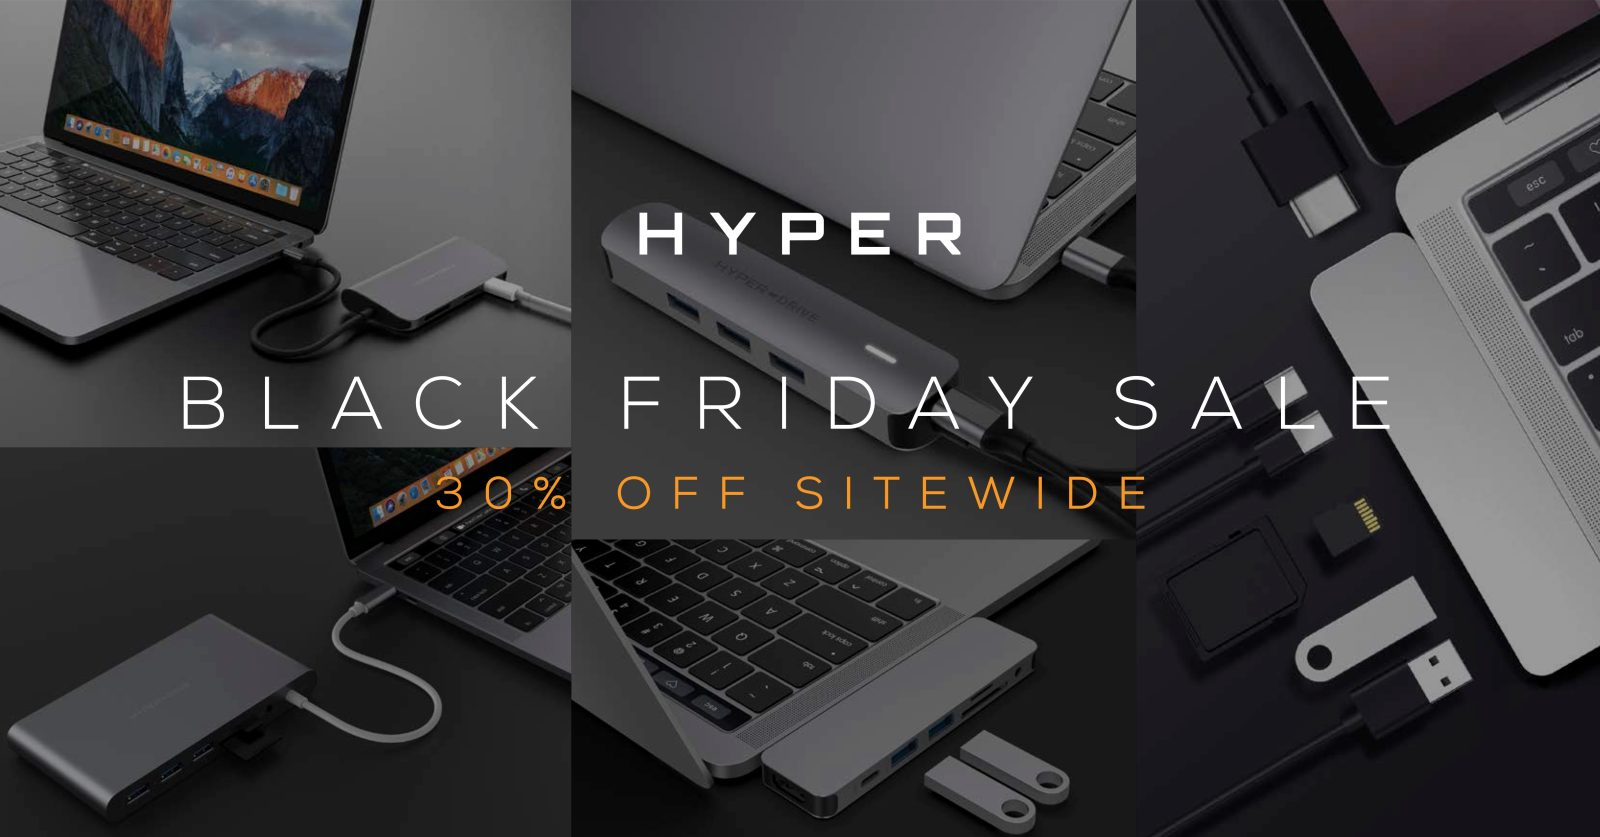 Hyper Black Friday offers 30% off sitewide on USB-C hubs, wireless chargers, battery packs & more